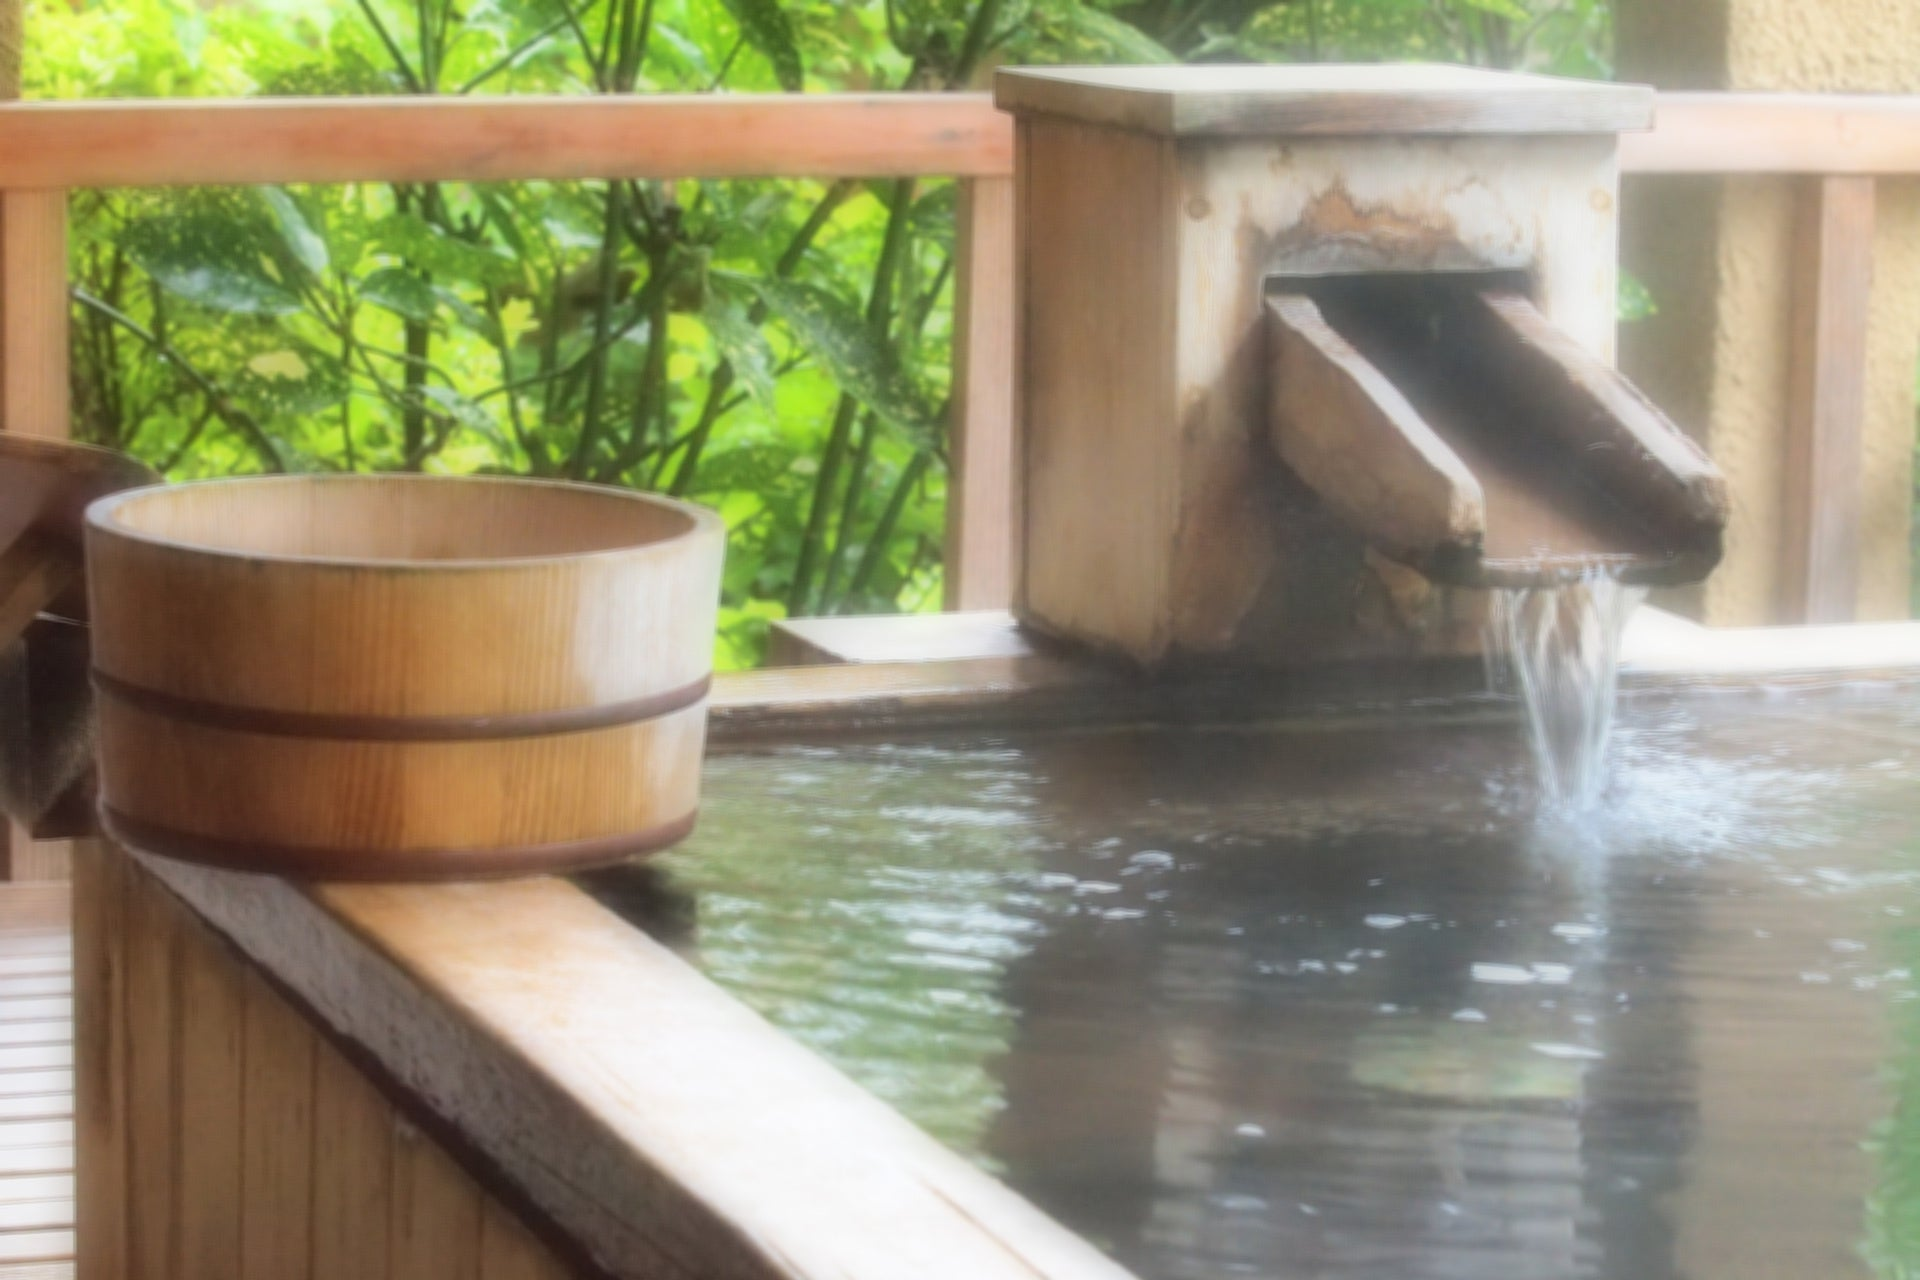 Essential Guide to Onsen: Naked Etiquette for Japanese Hot Springs